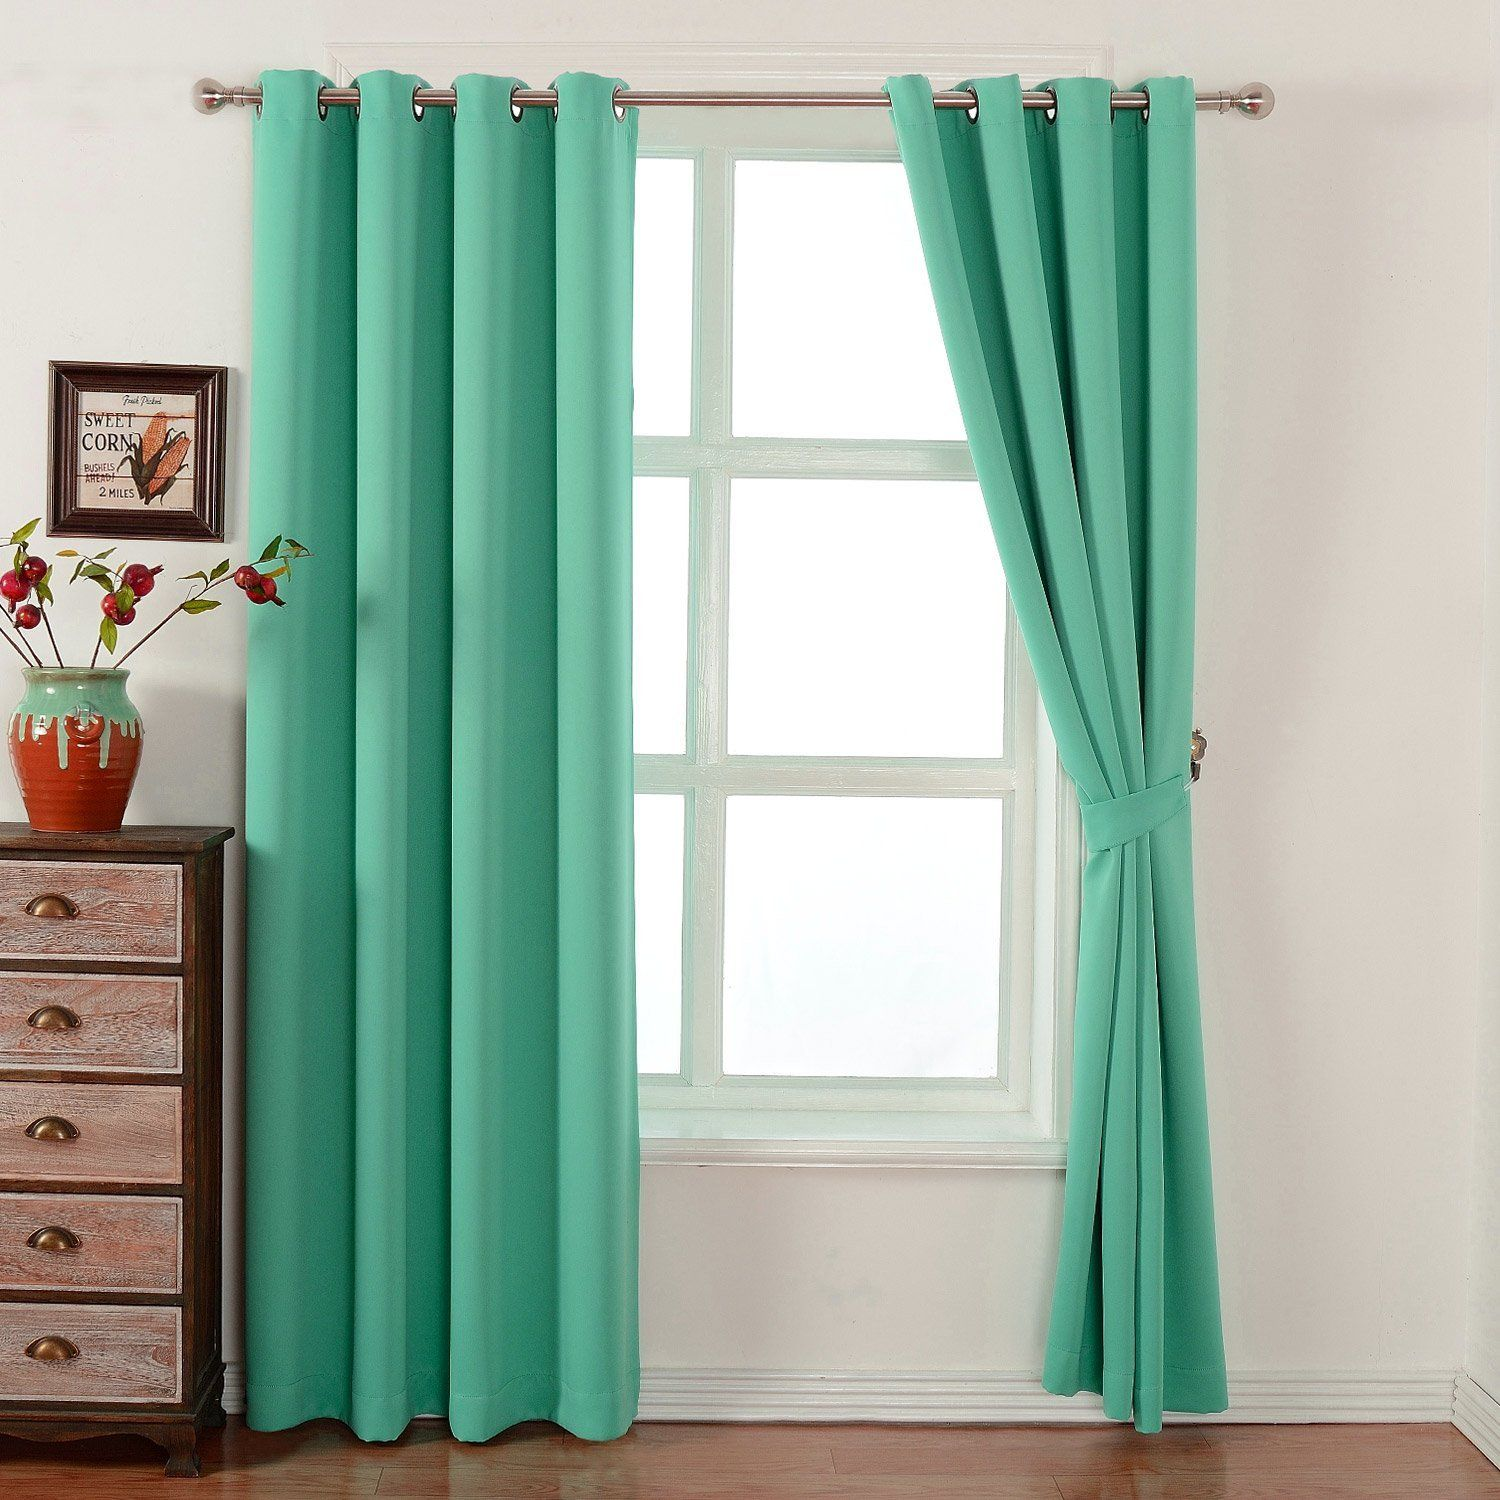 curtains schools sale design curtain websites girls interior define mn for